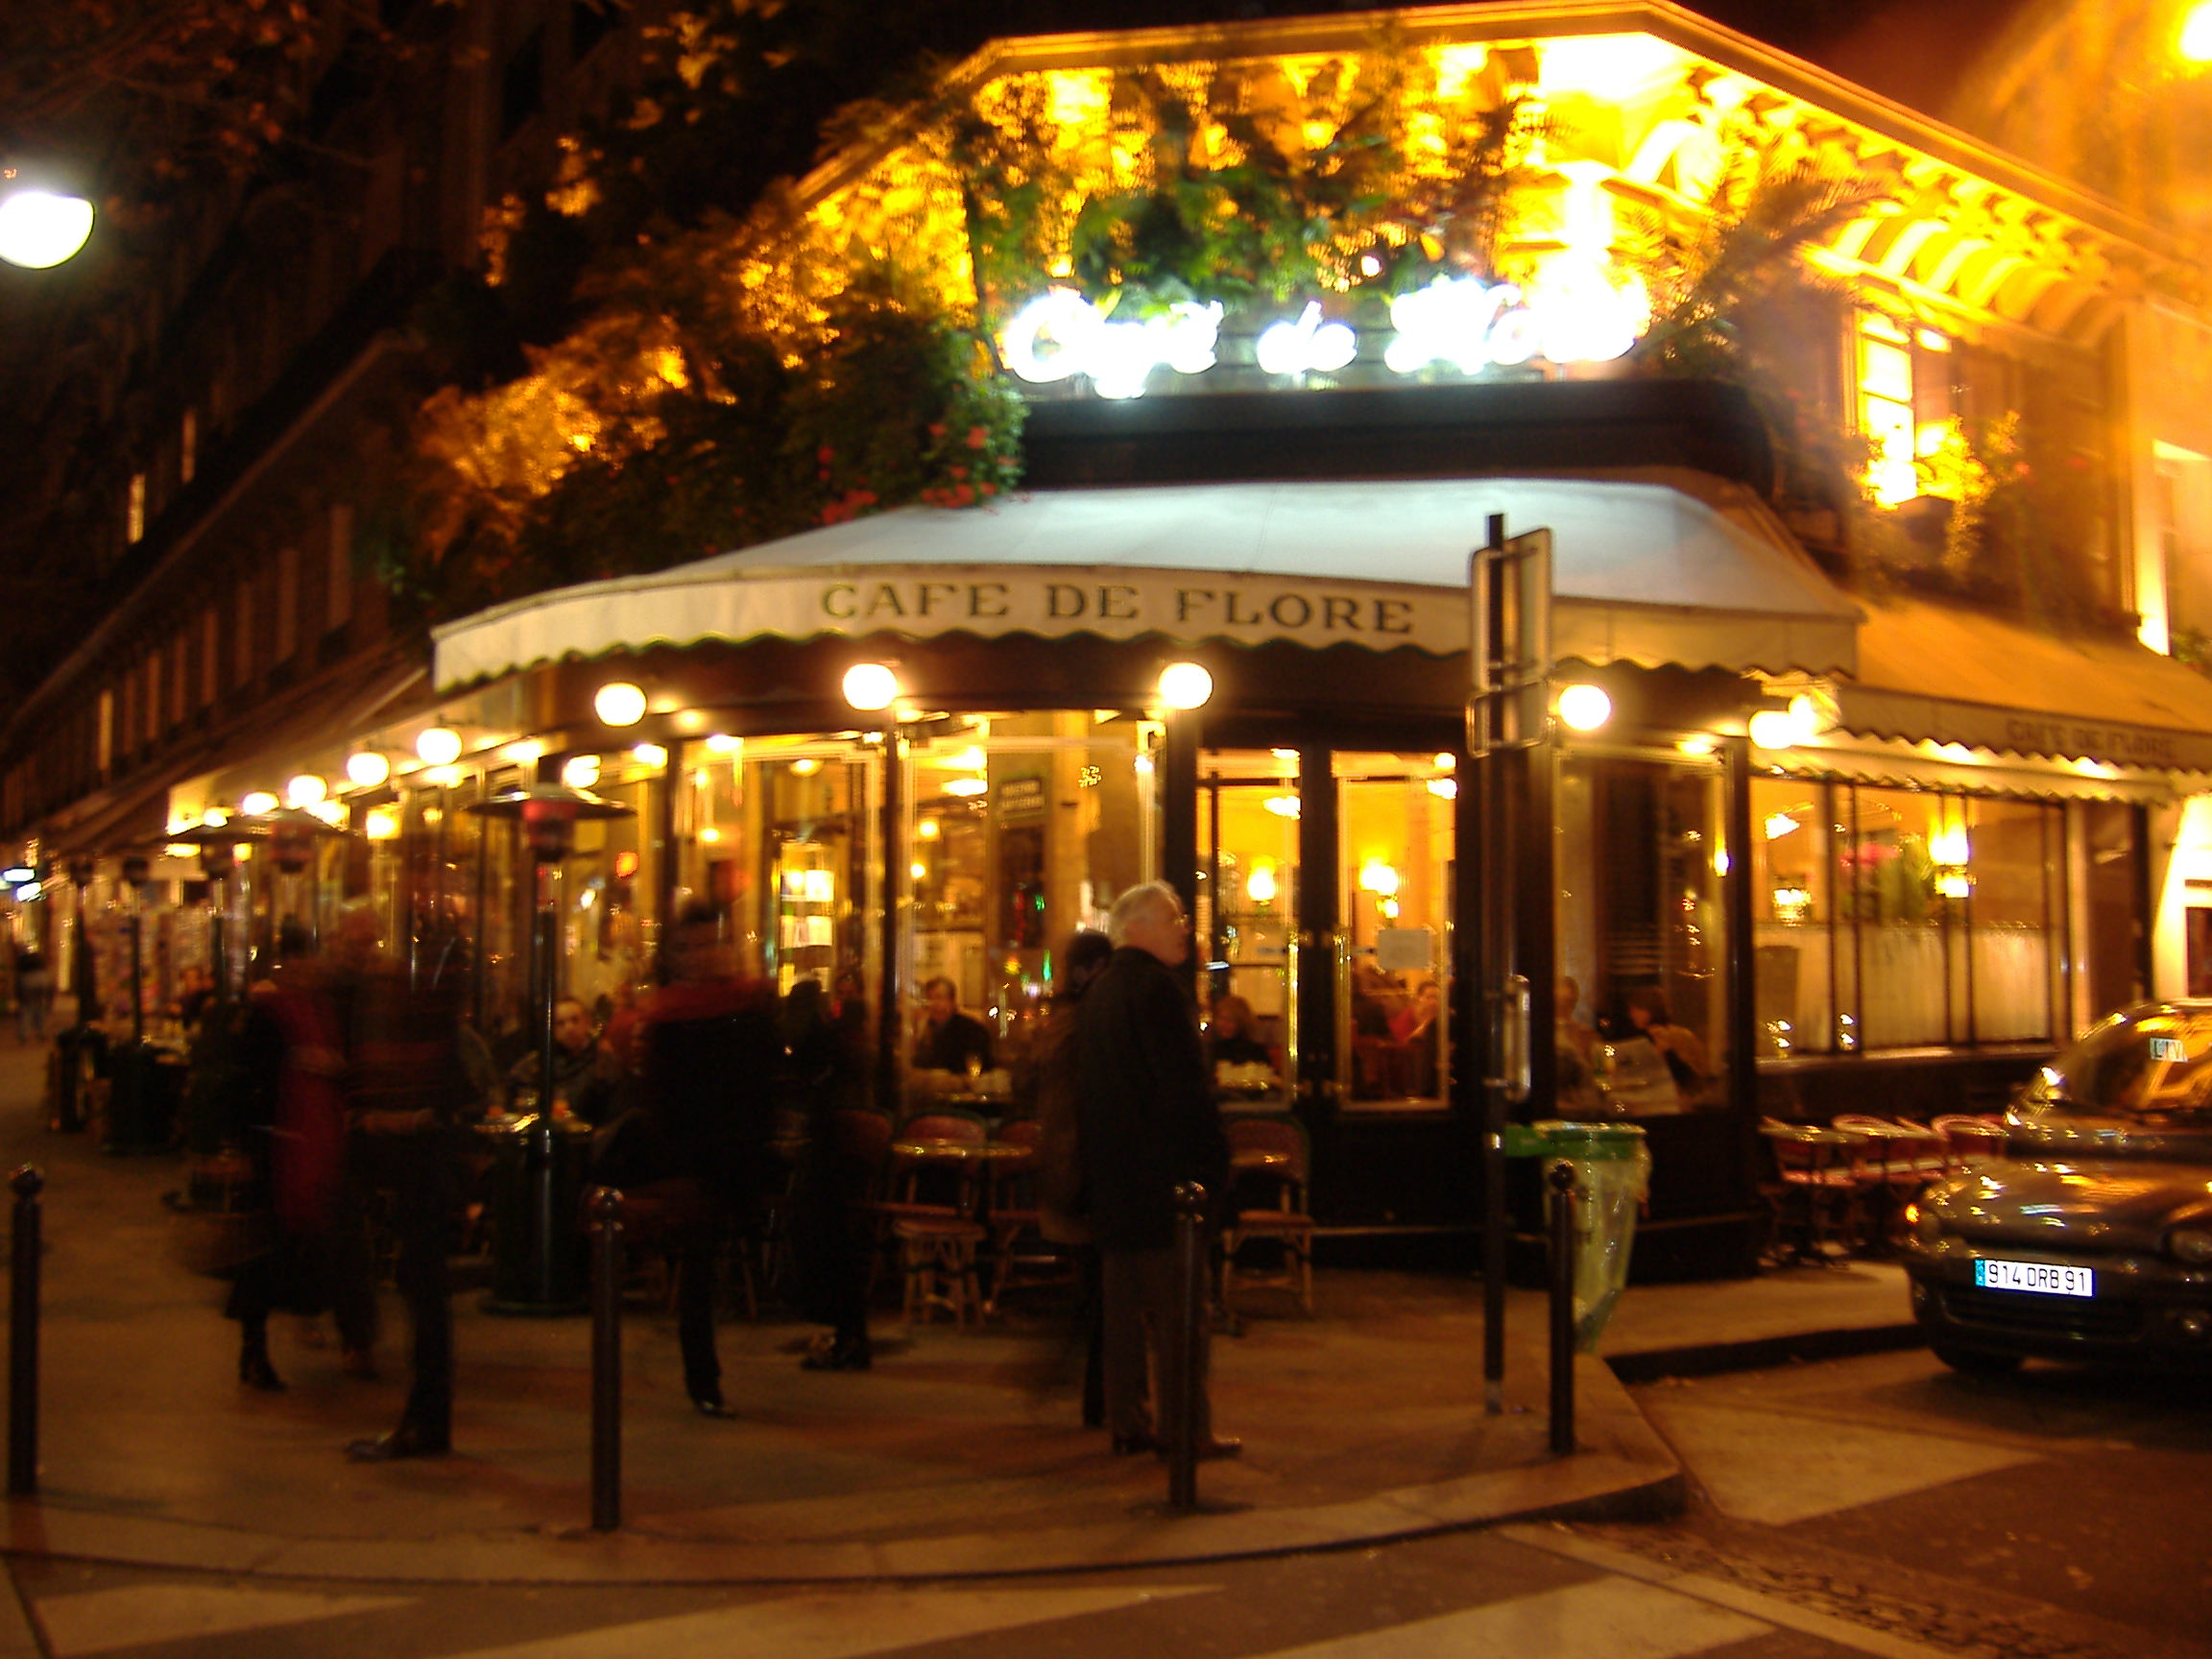 Cafe Le Flore Paris